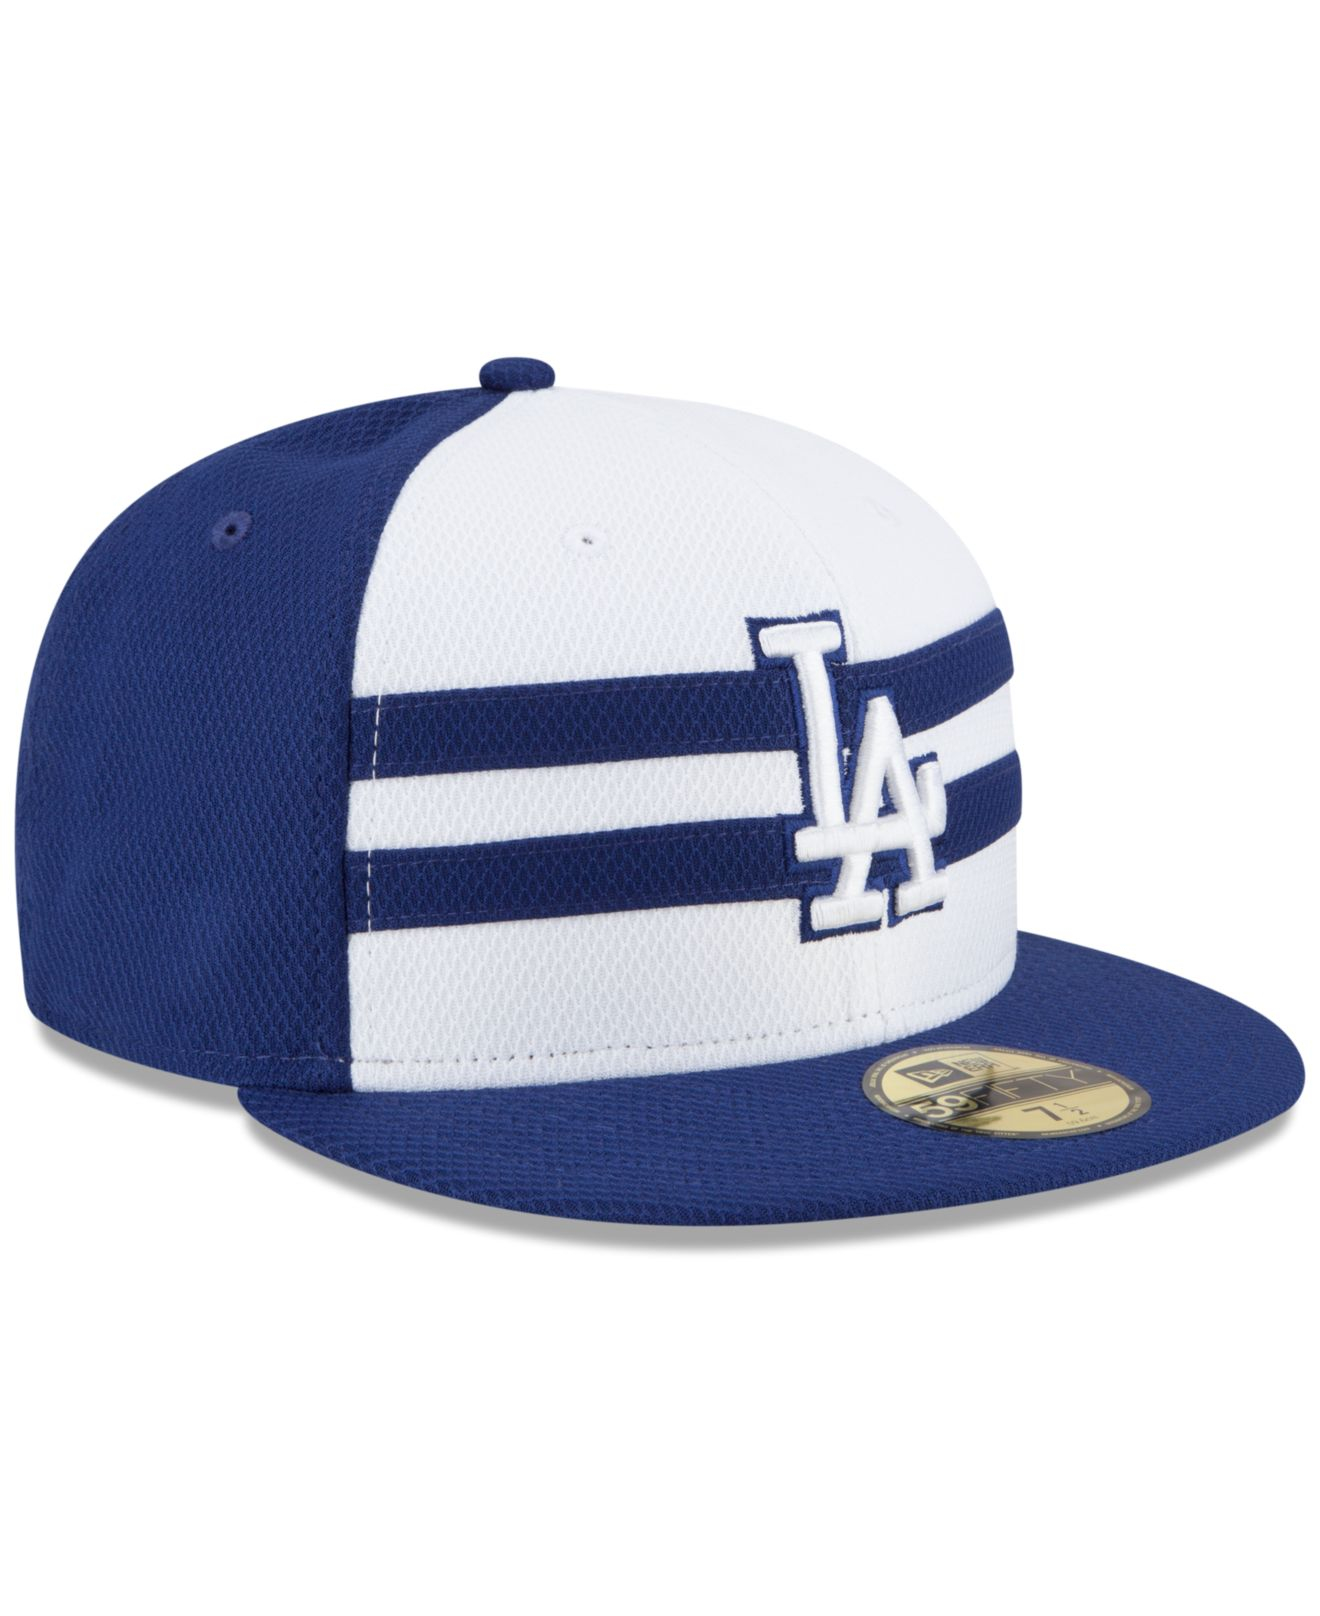 816a4f25 KTZ Blue Los Angeles Dodgers 2015 All Star Game 59fifty Cap for men